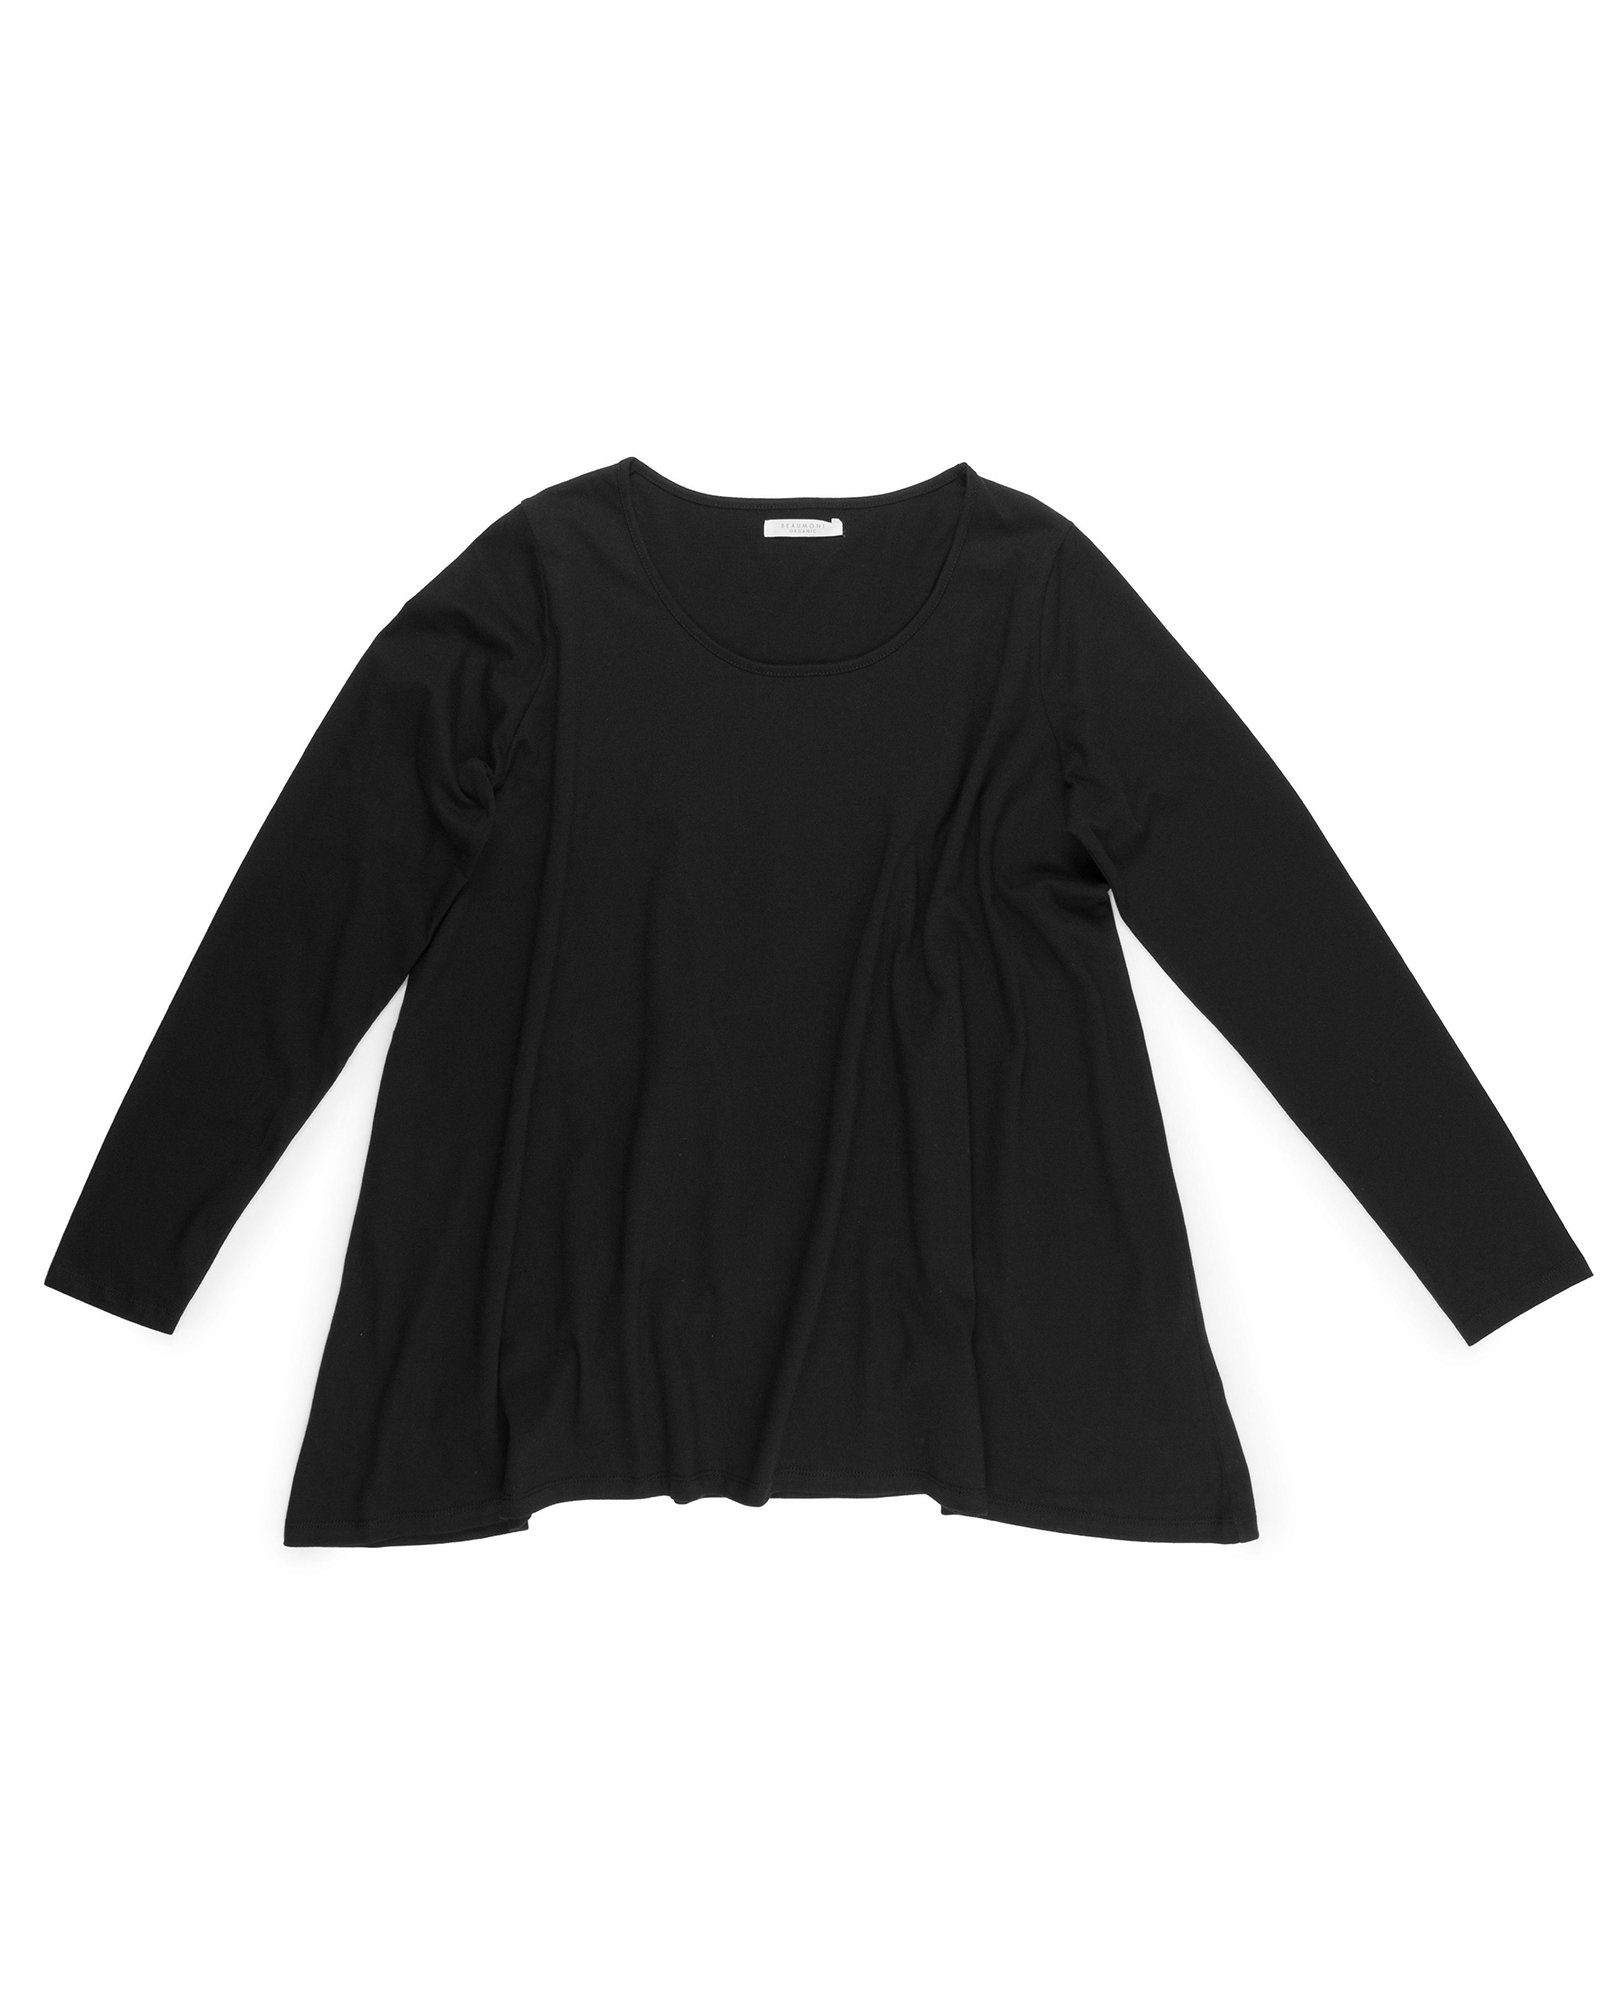 HELSA Organic Cotton Swing Top In Black from Beaumont Organic